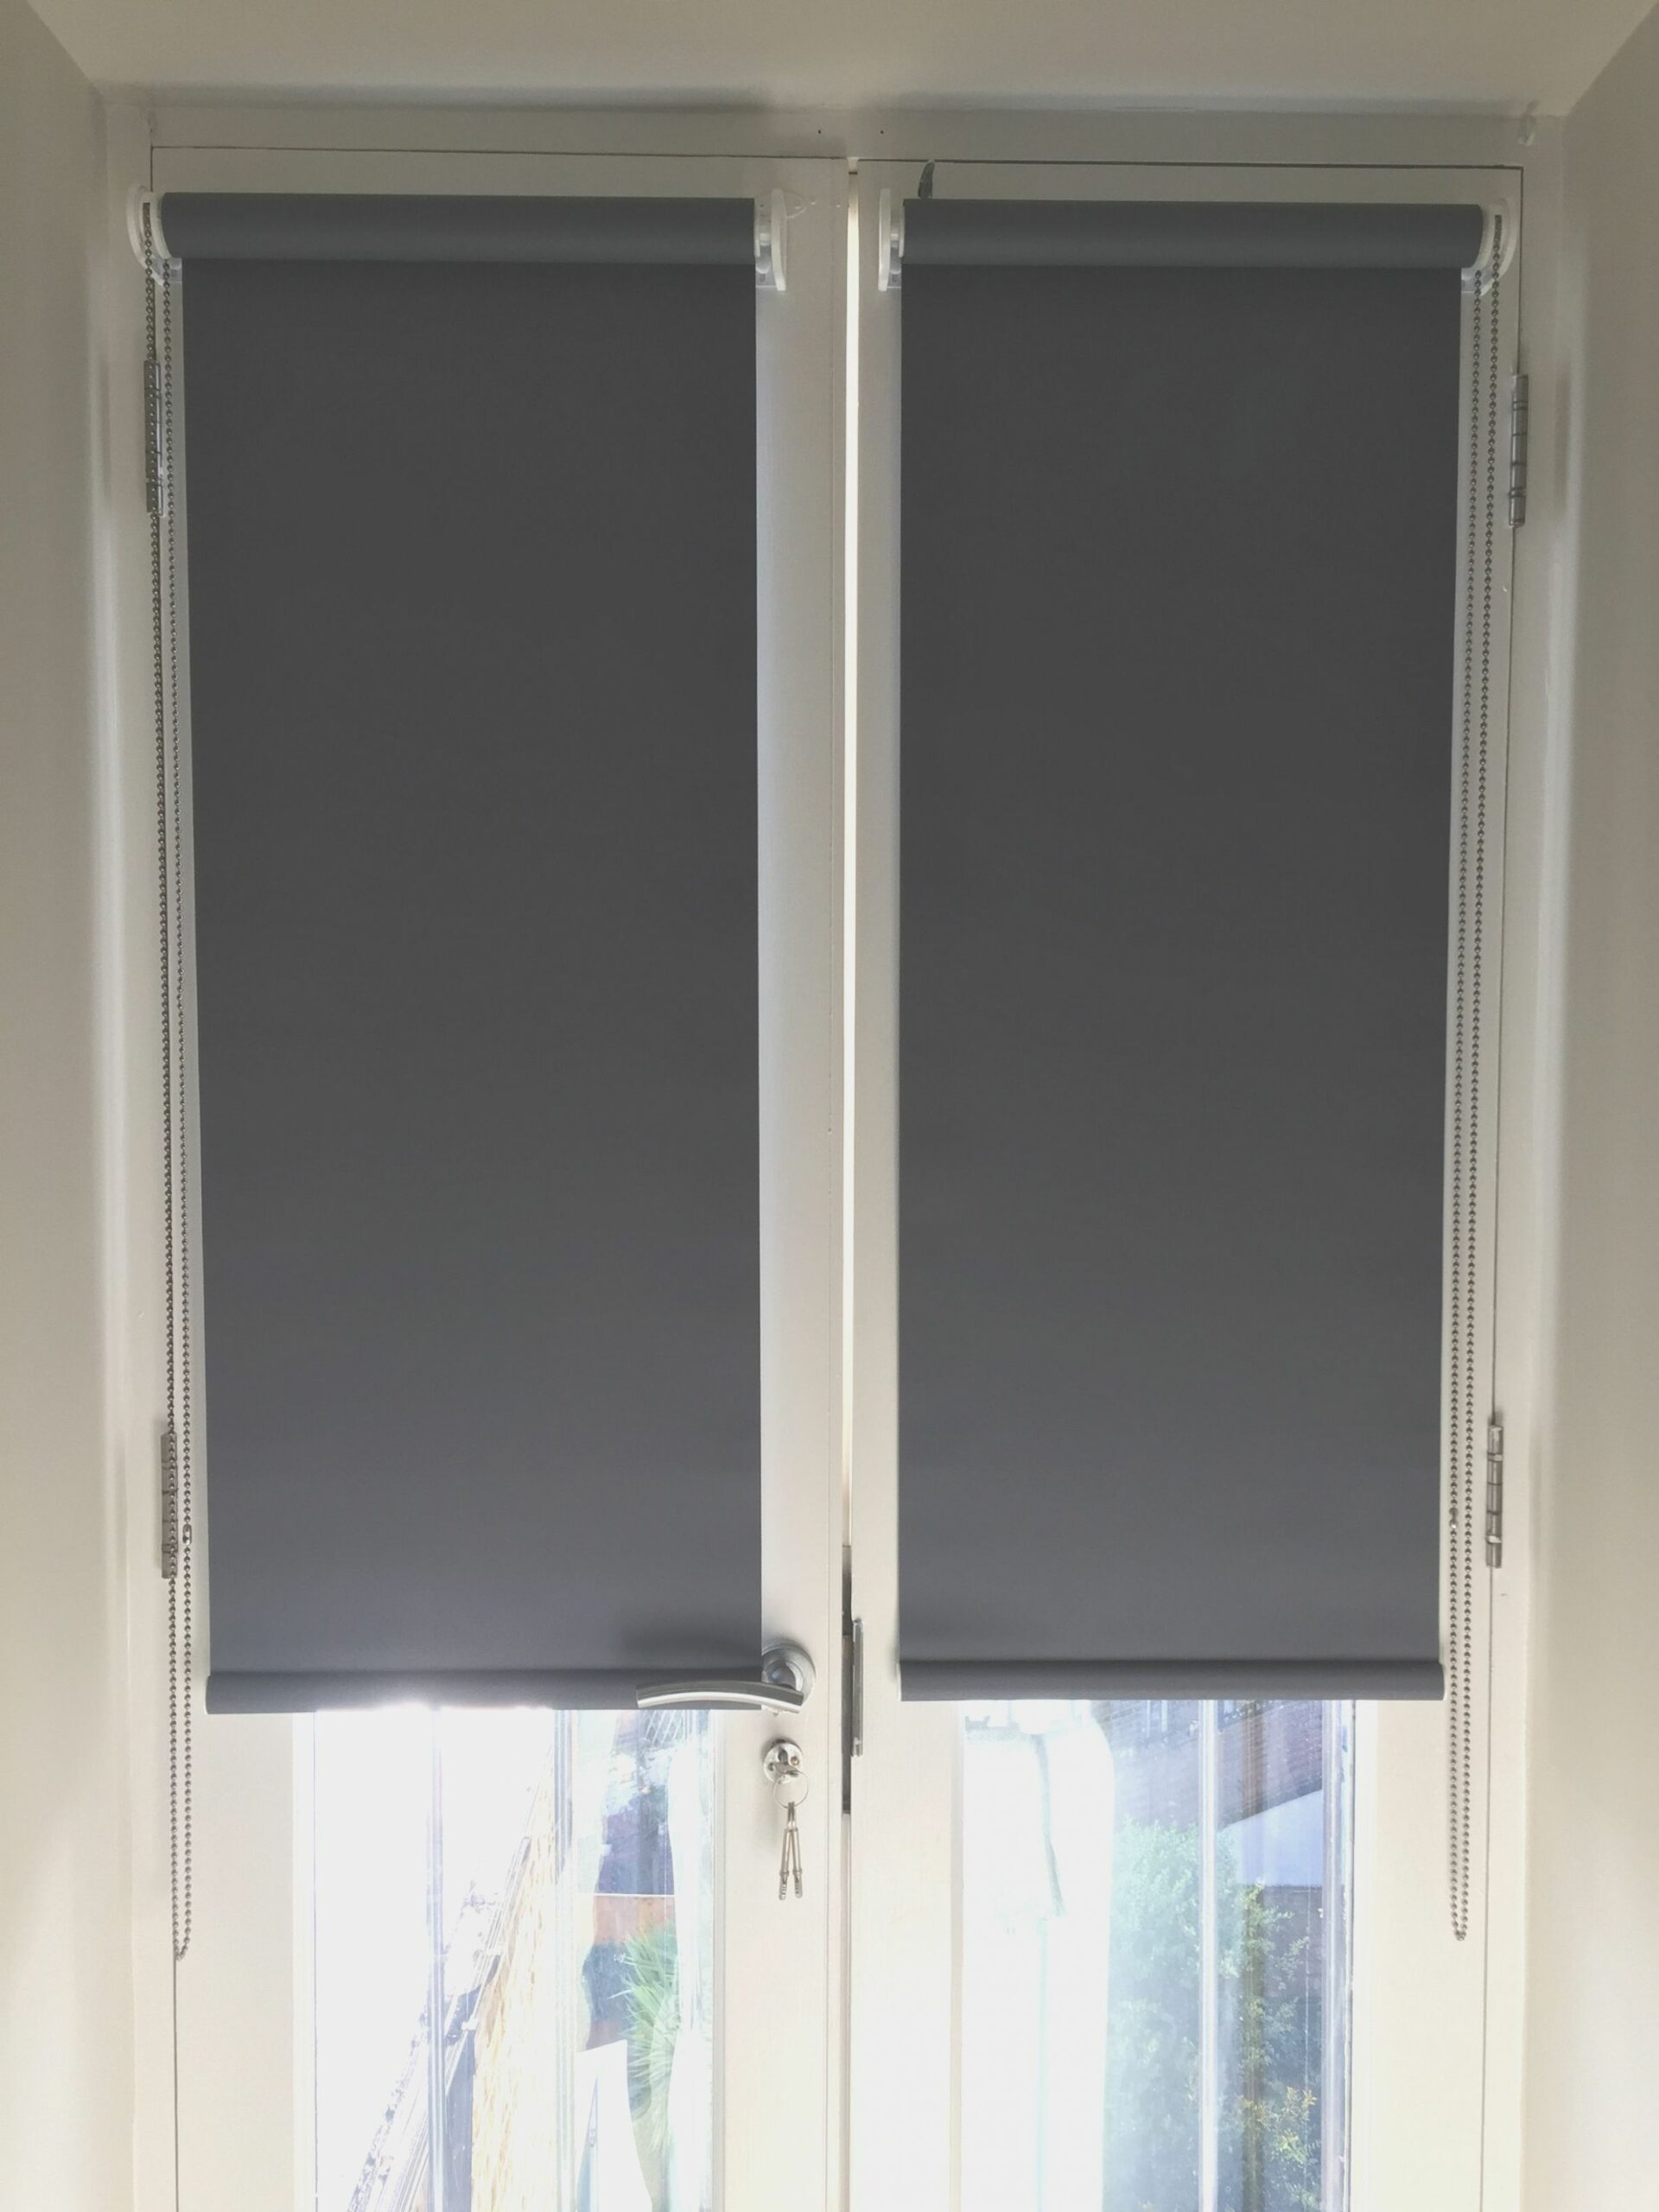 Blackout roller blinds for french doors installed to home in ..